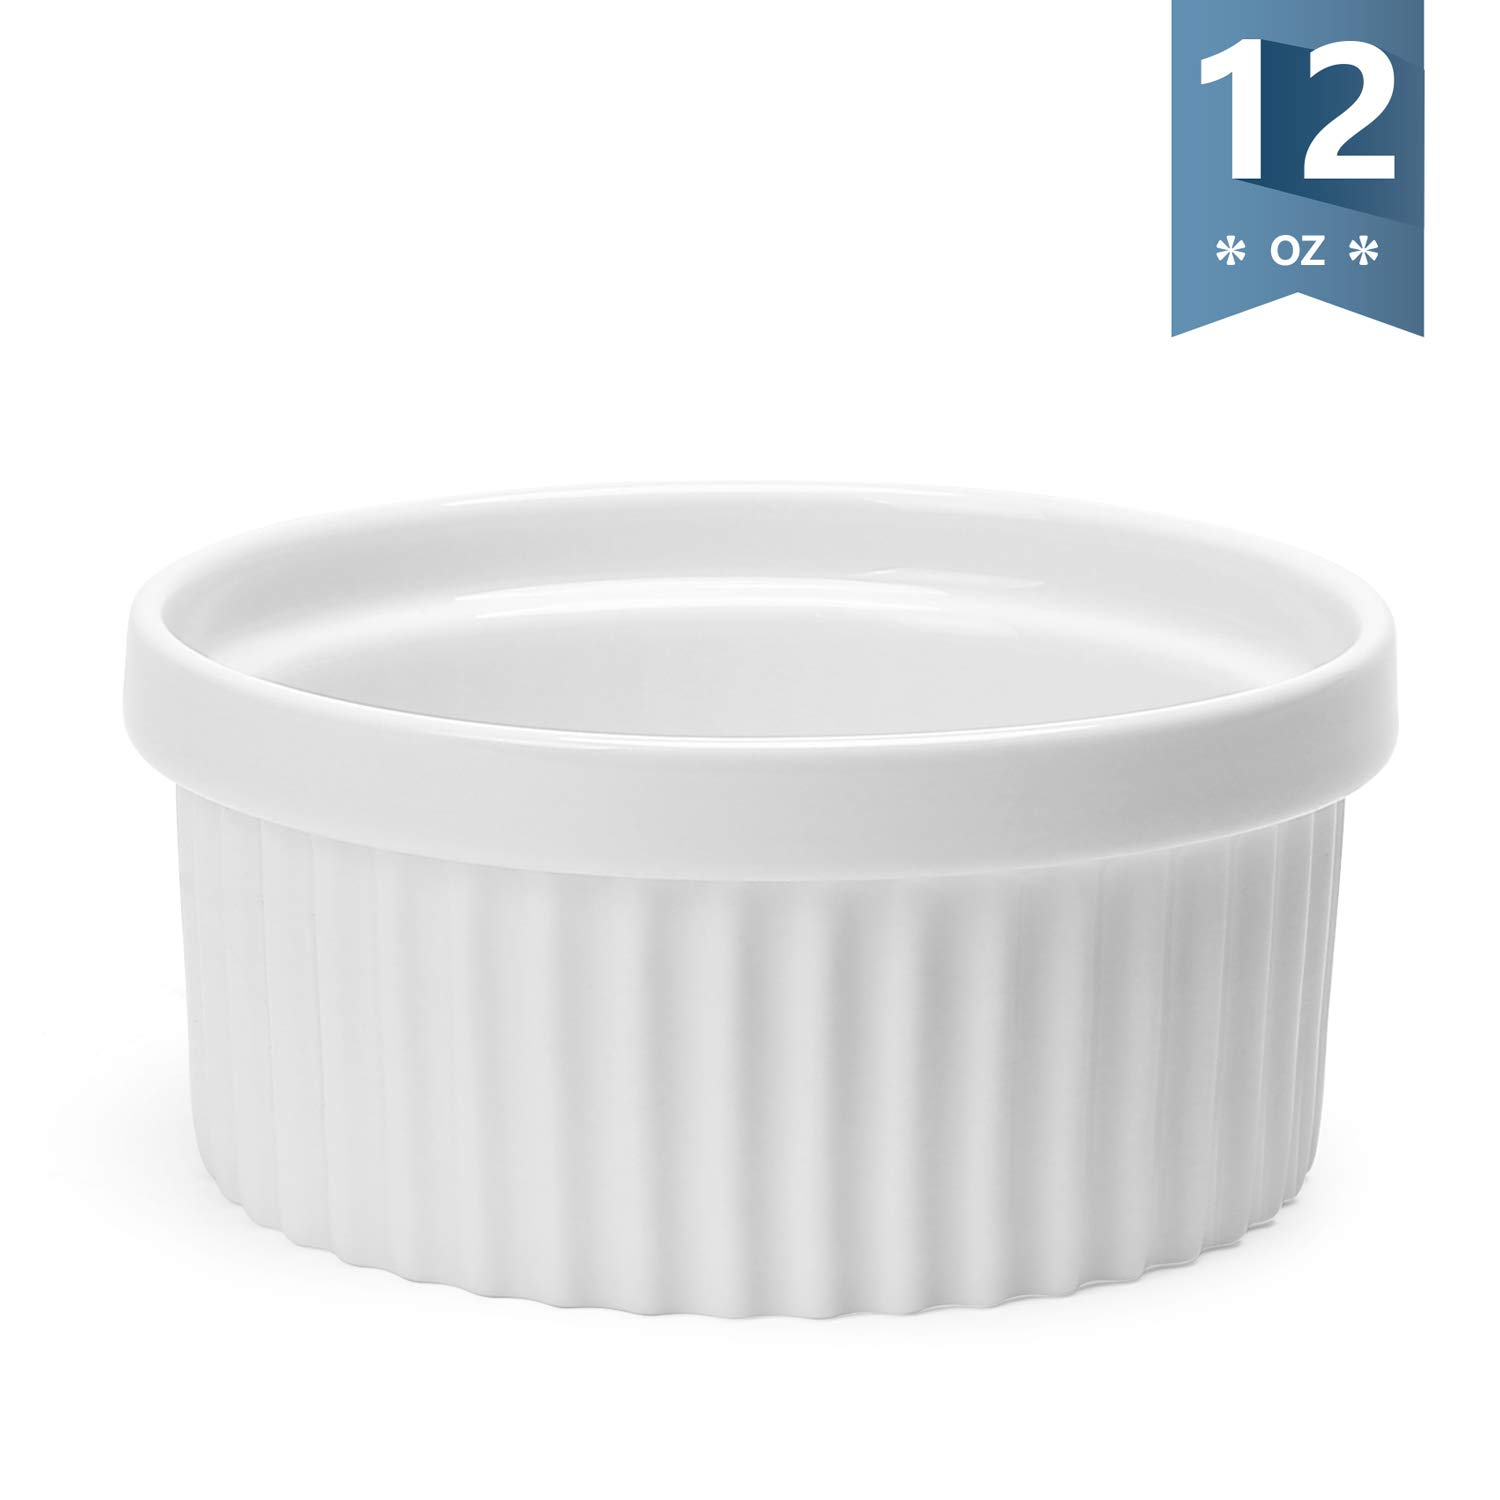 Sweese 503.000 Porcelain Ramekins for Baking - 12 Ounce Souffle Dish - Single, White